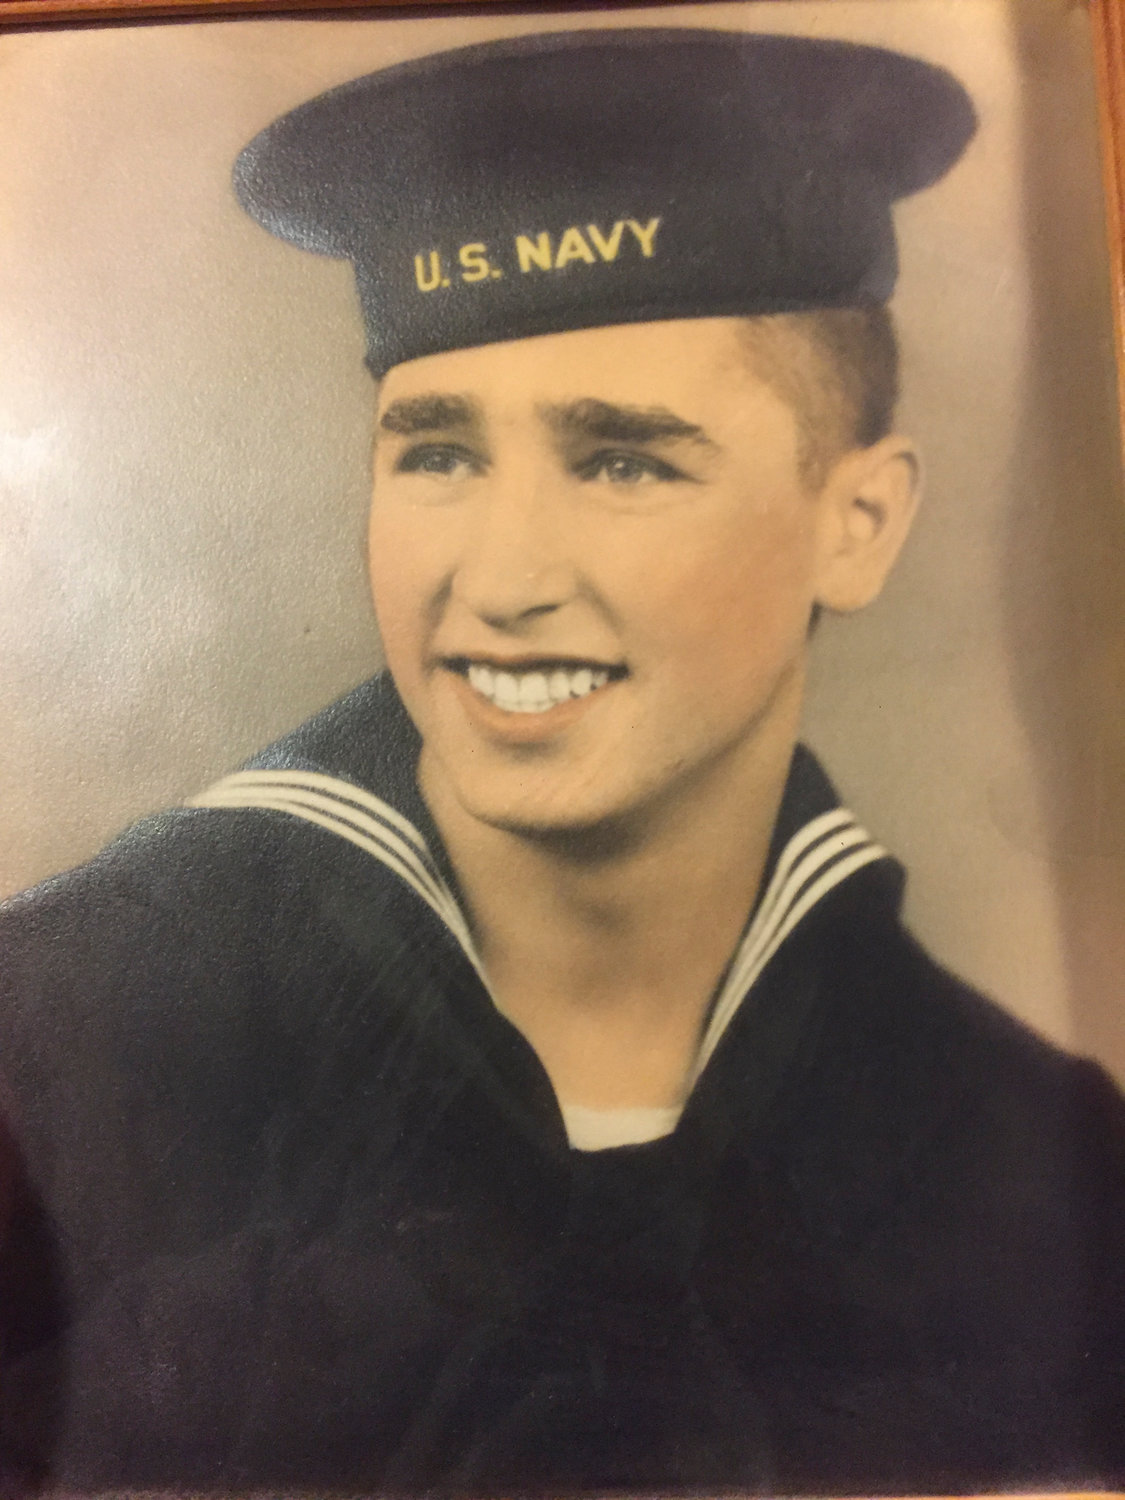 Jimmy Lijoi shortly after coming home from World War II. Lijoi was a seamaster aboard LST 510 during the D-Day invasion.